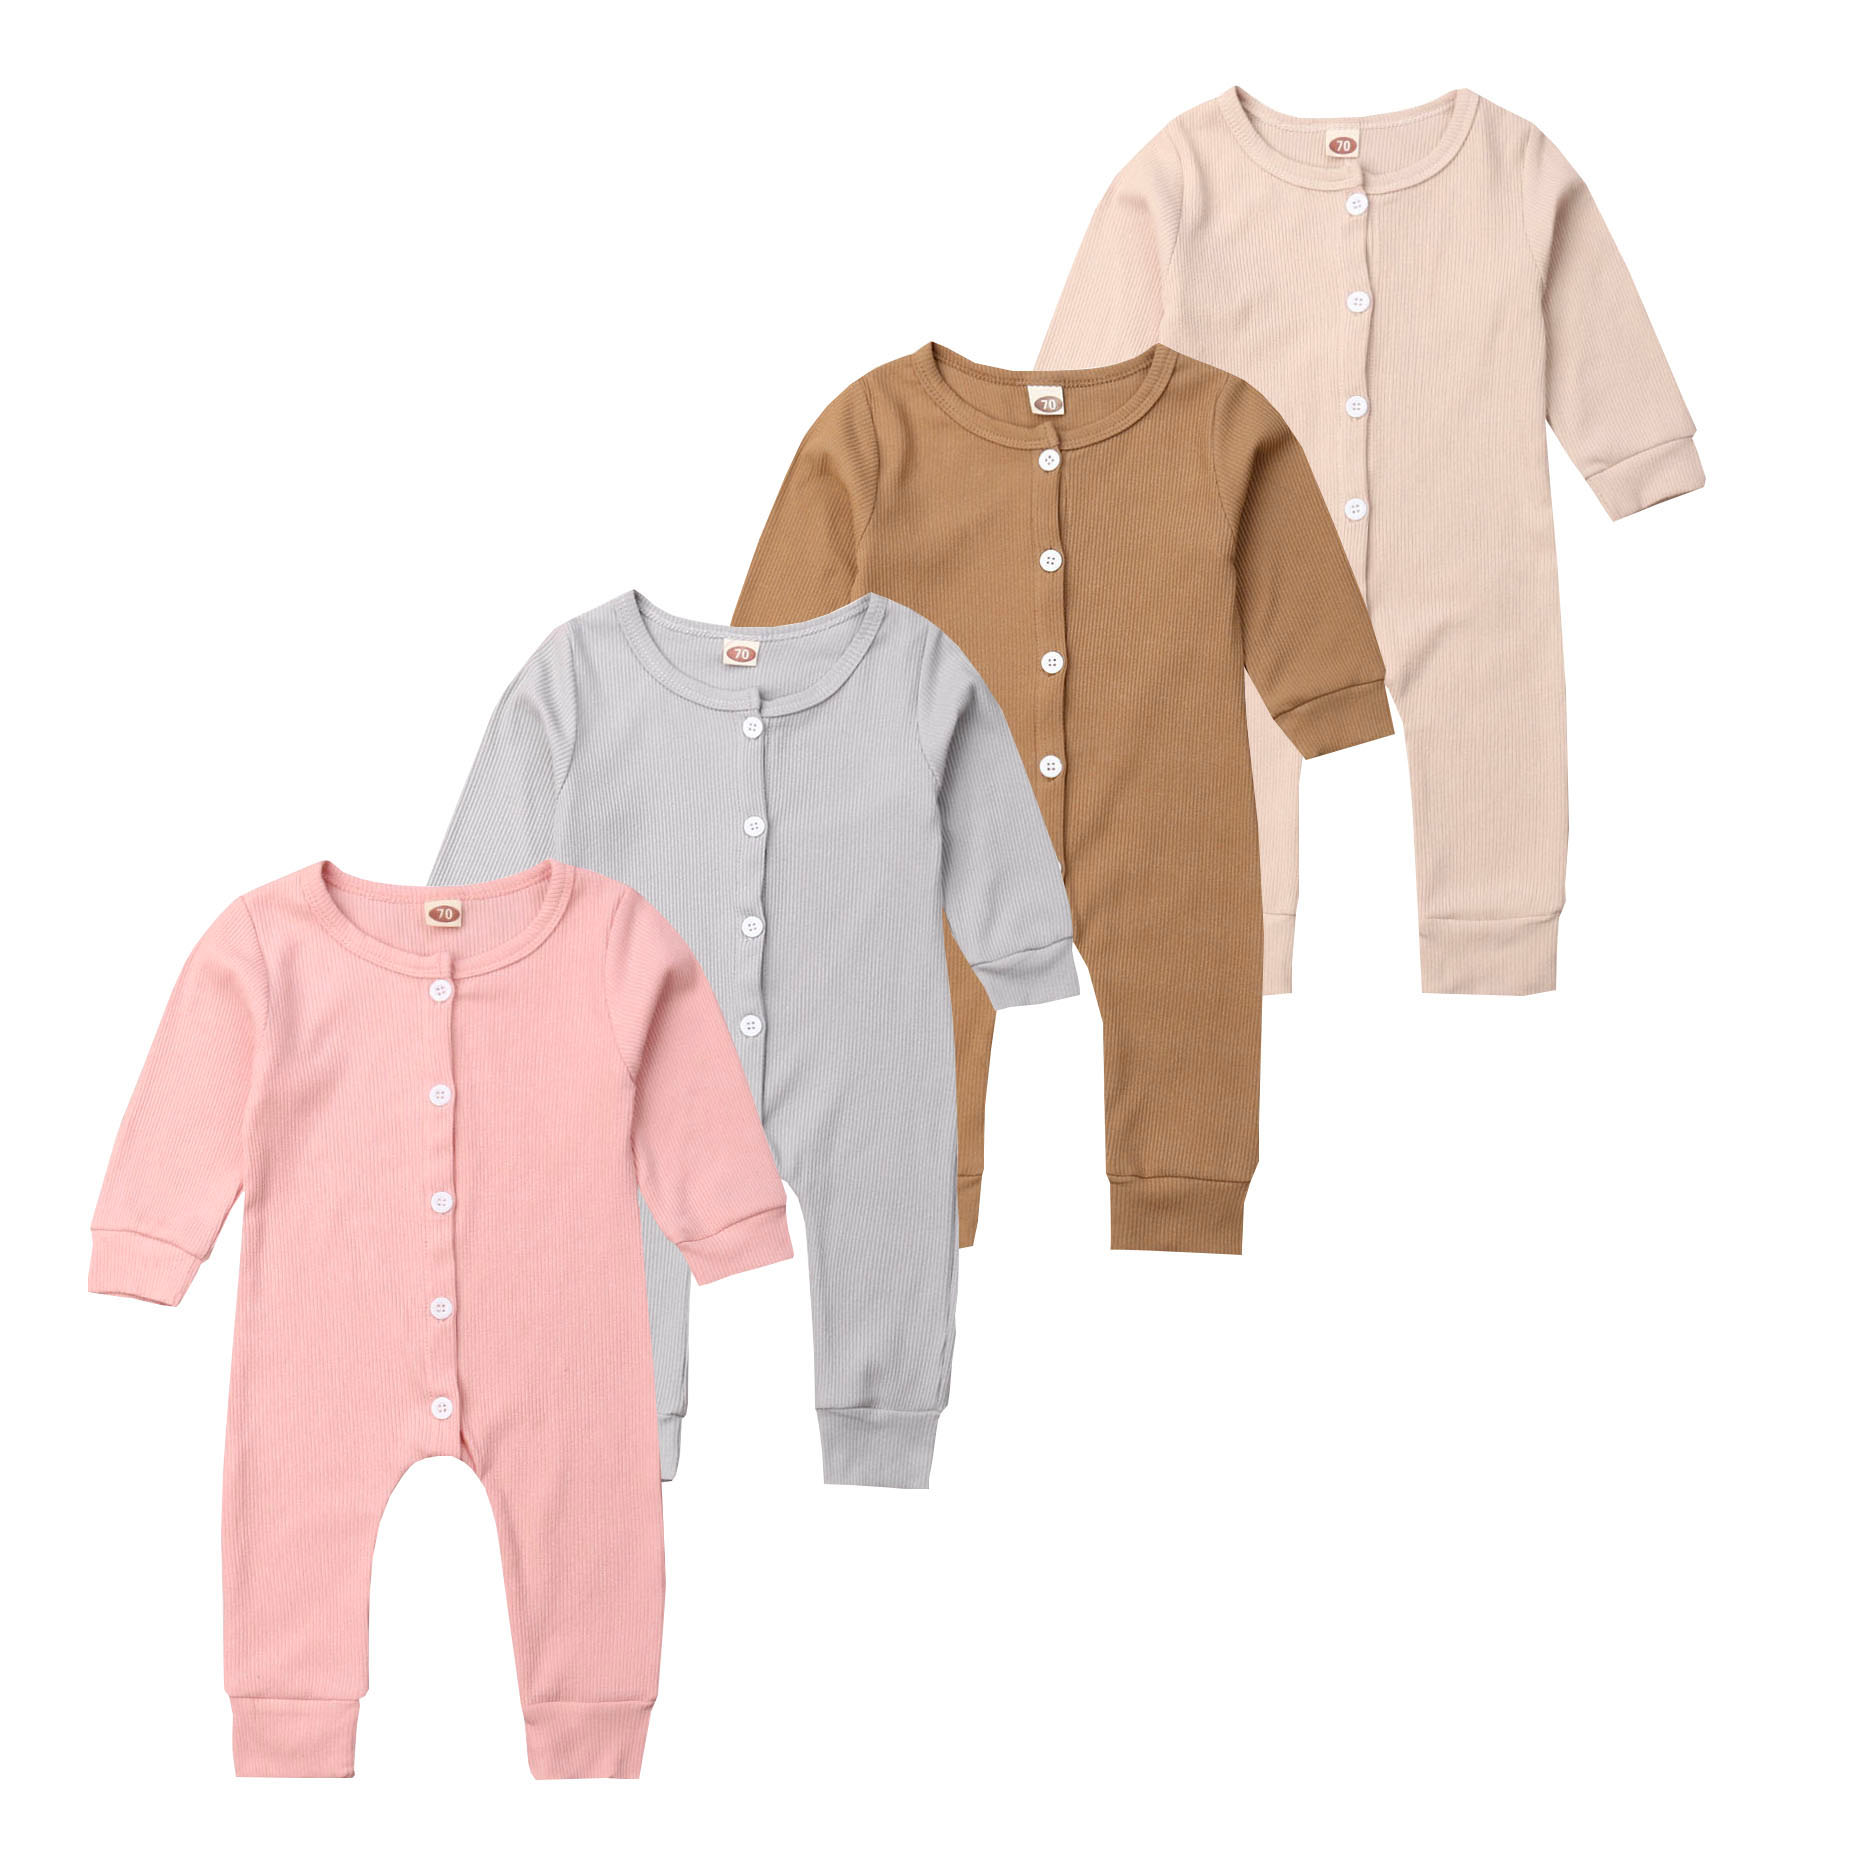 0-24Months Newborn <font><b>Baby</b></font> Girl Boy Cotton <font><b>Romper</b></font> Jumpsuit Long Sleeve Button Up One Pieces Casual Outfits Pjs Clothes Autumn image